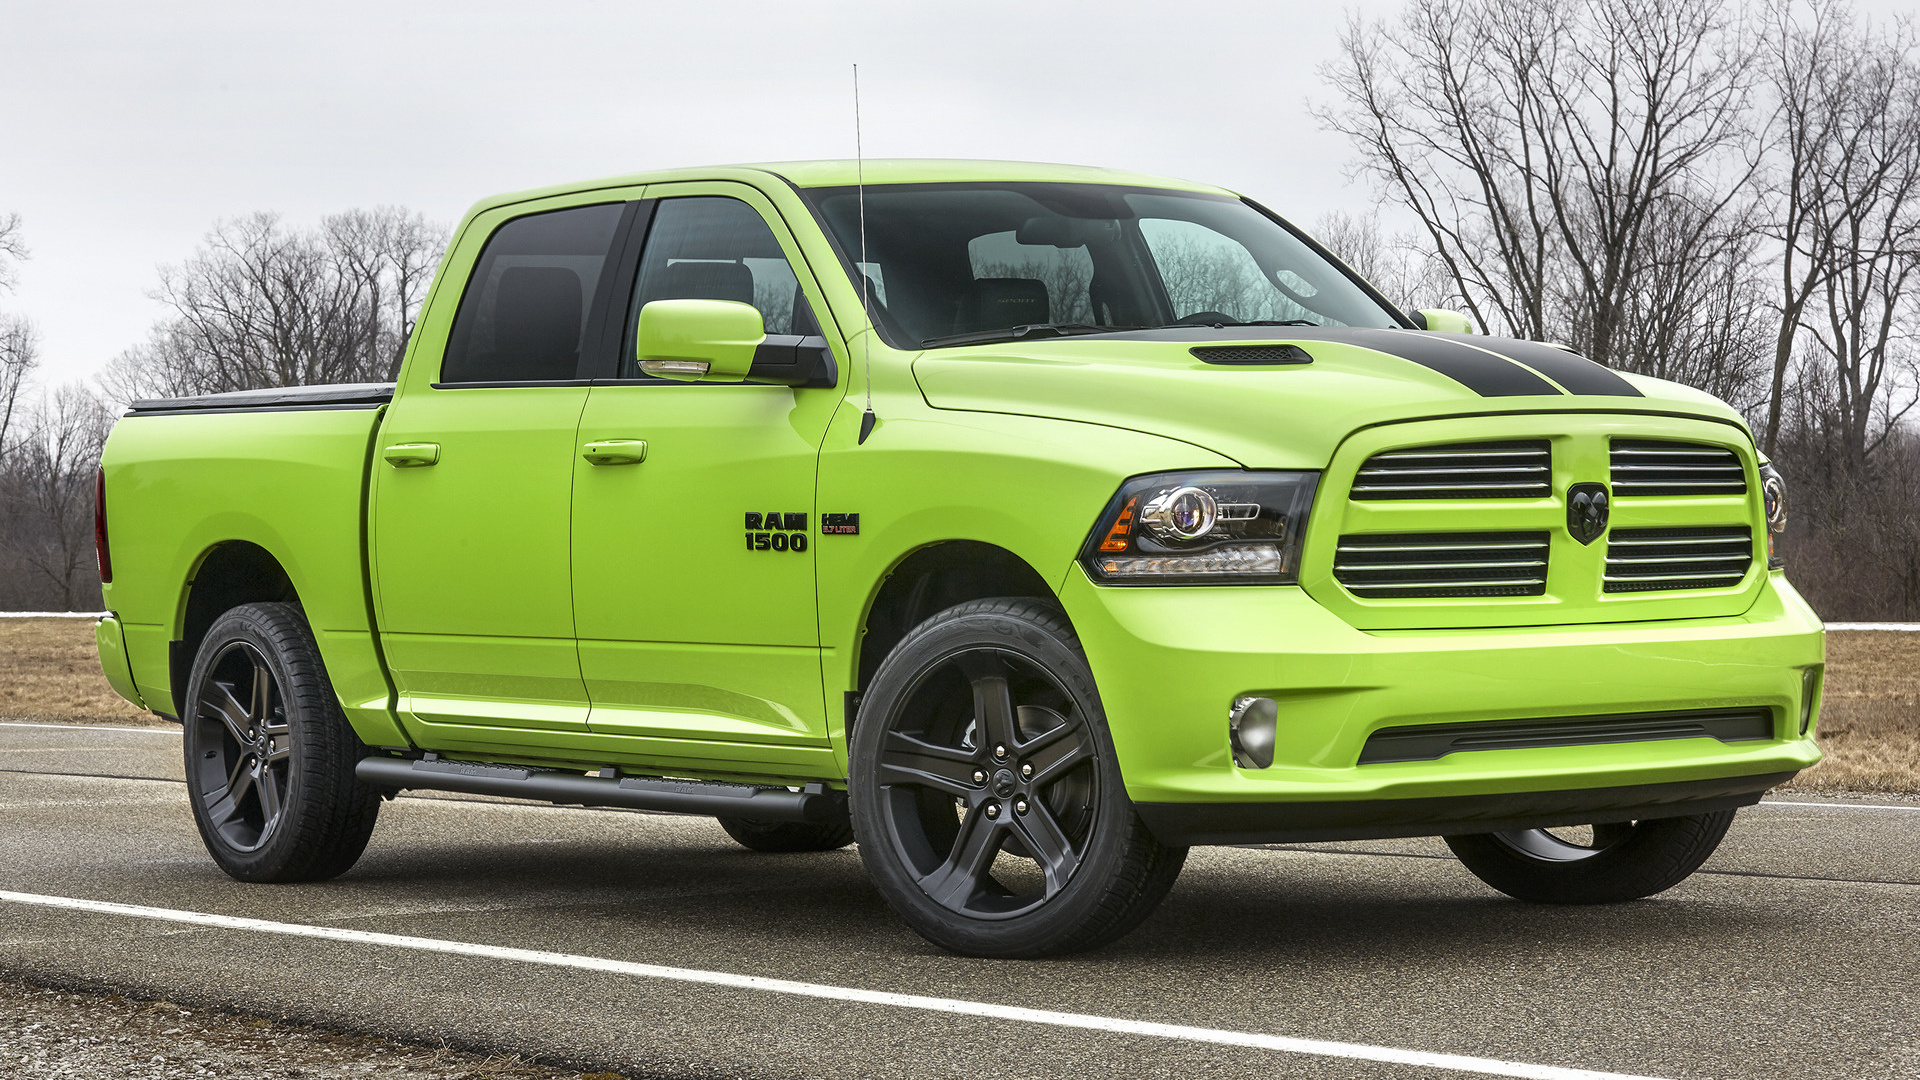 Ram Sublime Sport Crew Cab Wallpaper Hd on Dodge Ram Quad